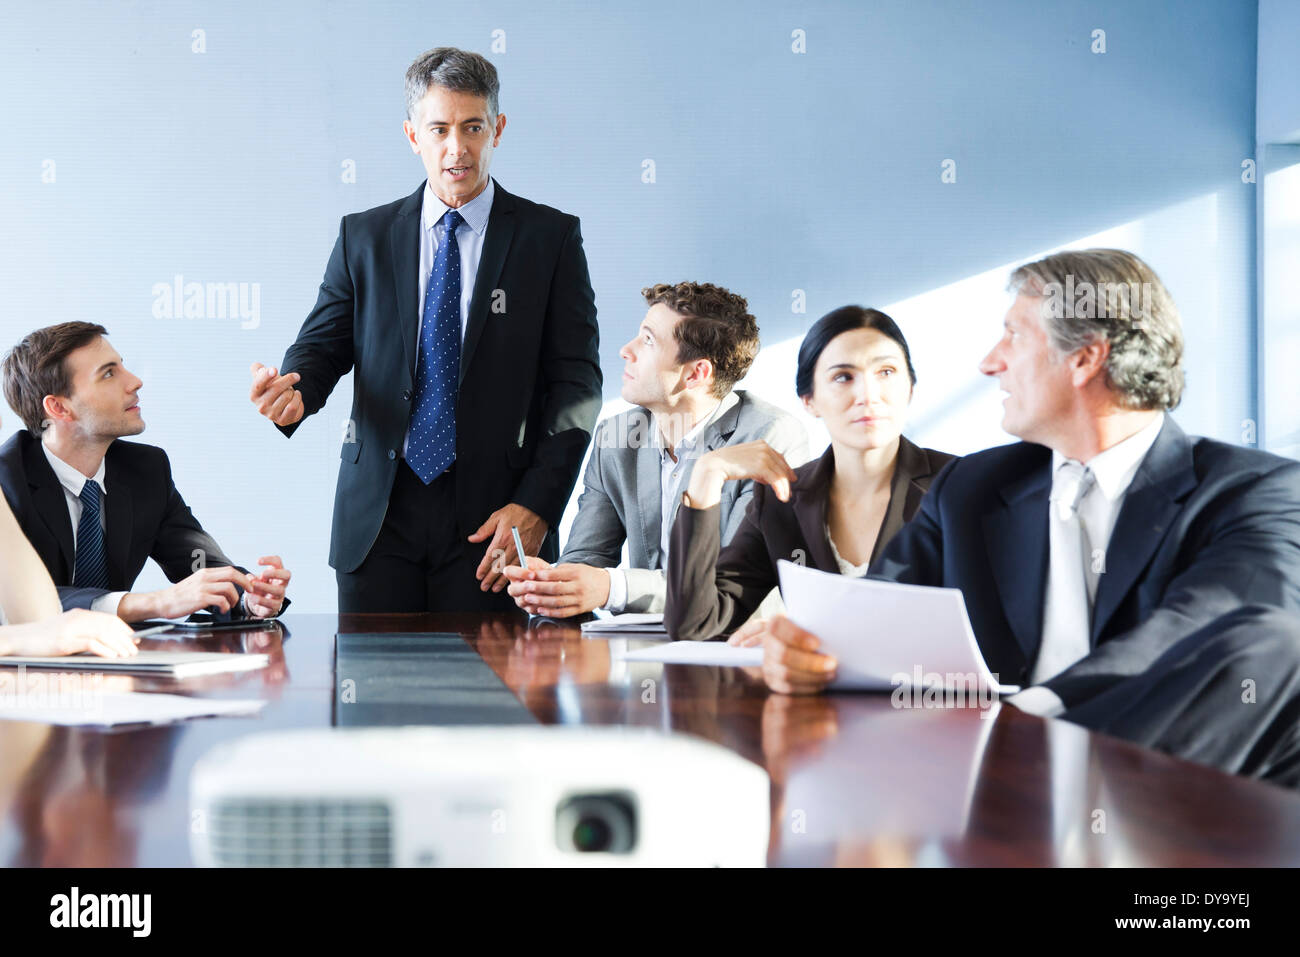 Corporate trainer leading training session - Stock Image